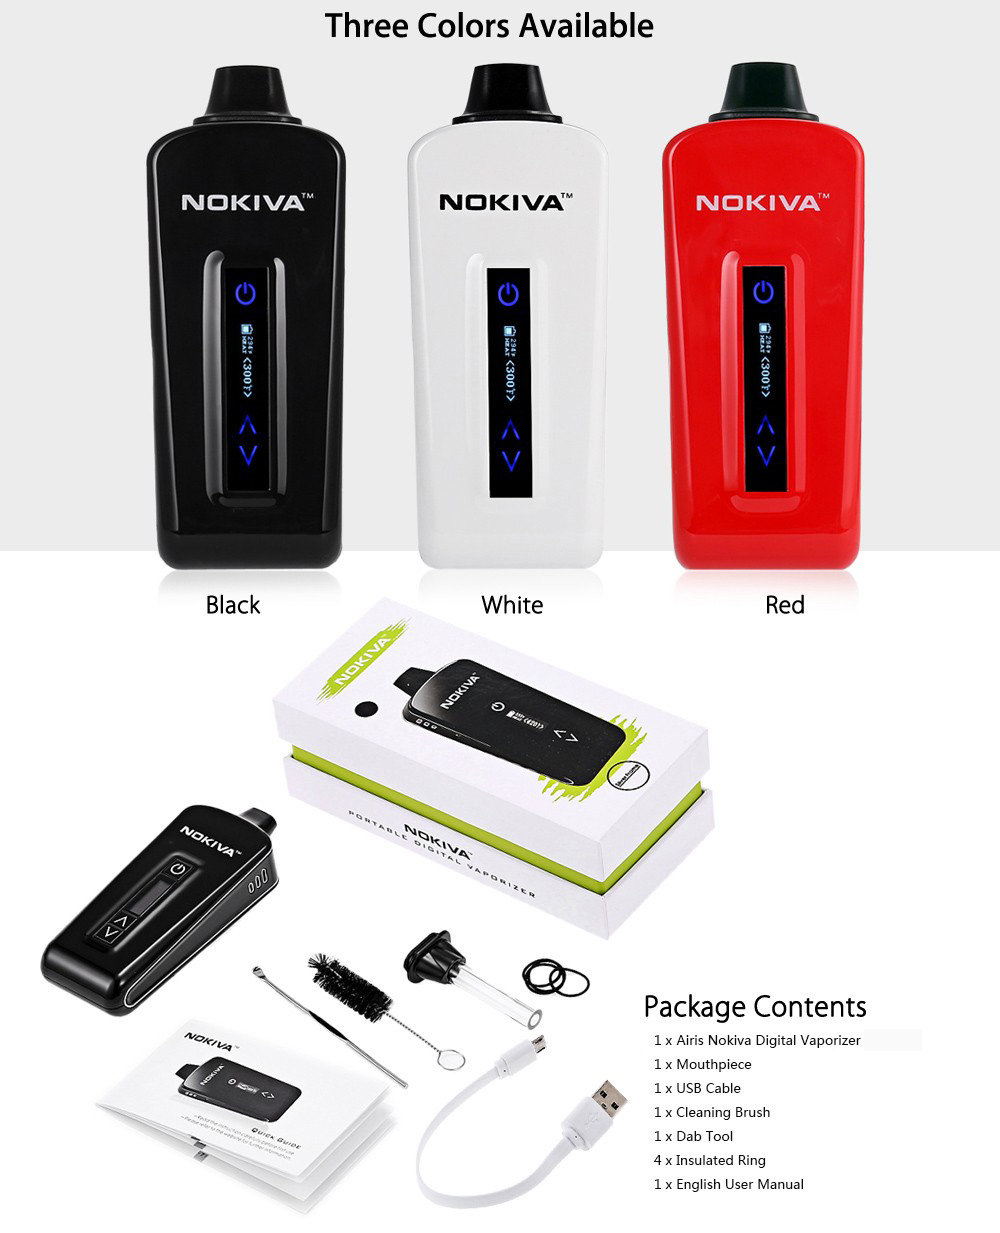 Original ANLERR Airis Nokiva Digital Vaporizer with 300 - 435F / 149 - 224C / Memory Data Function / 2200mAh Li-polymer Battery for E Cigarette